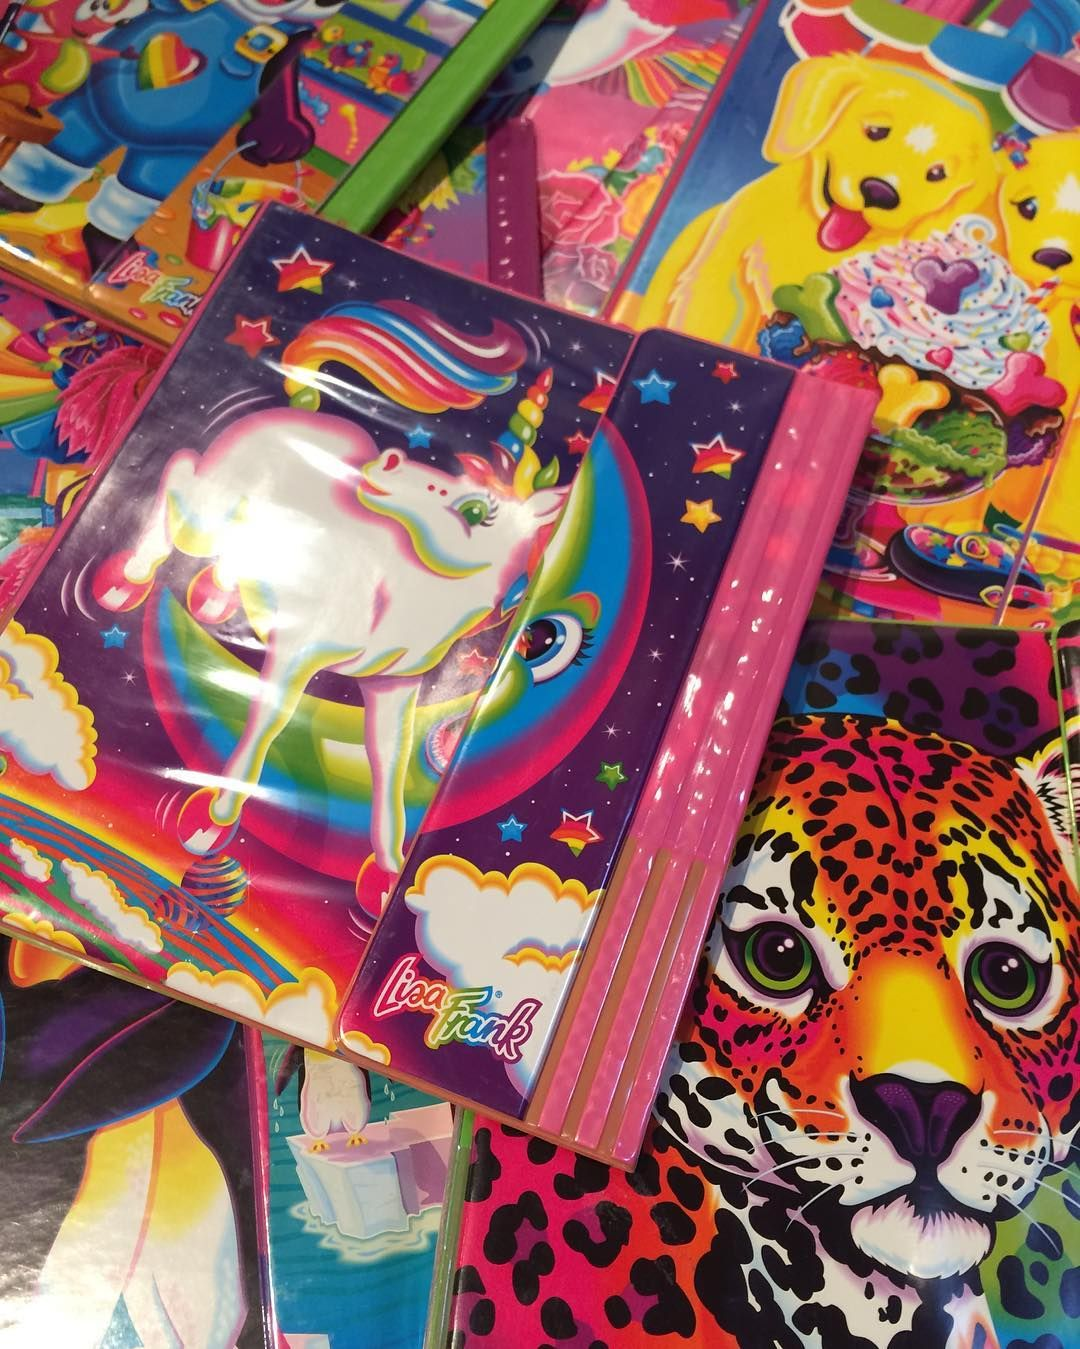 Do you want us to make these awesome binders again